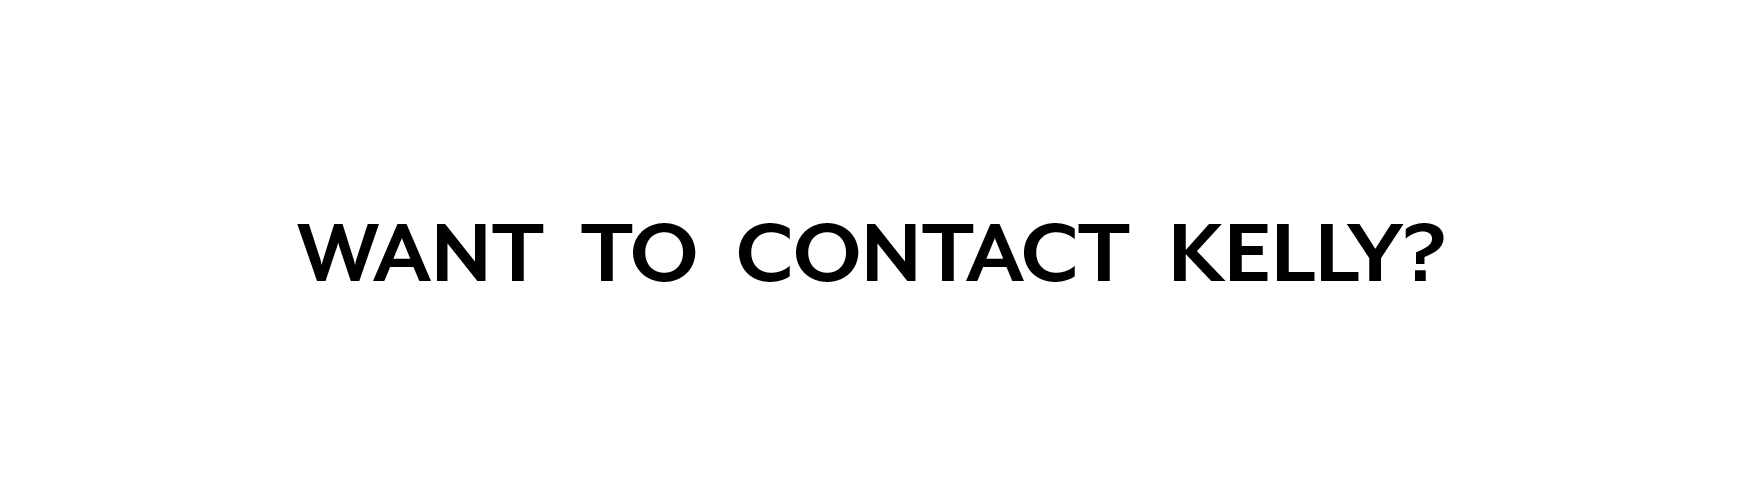 contact kelly - opt 6_quote.png